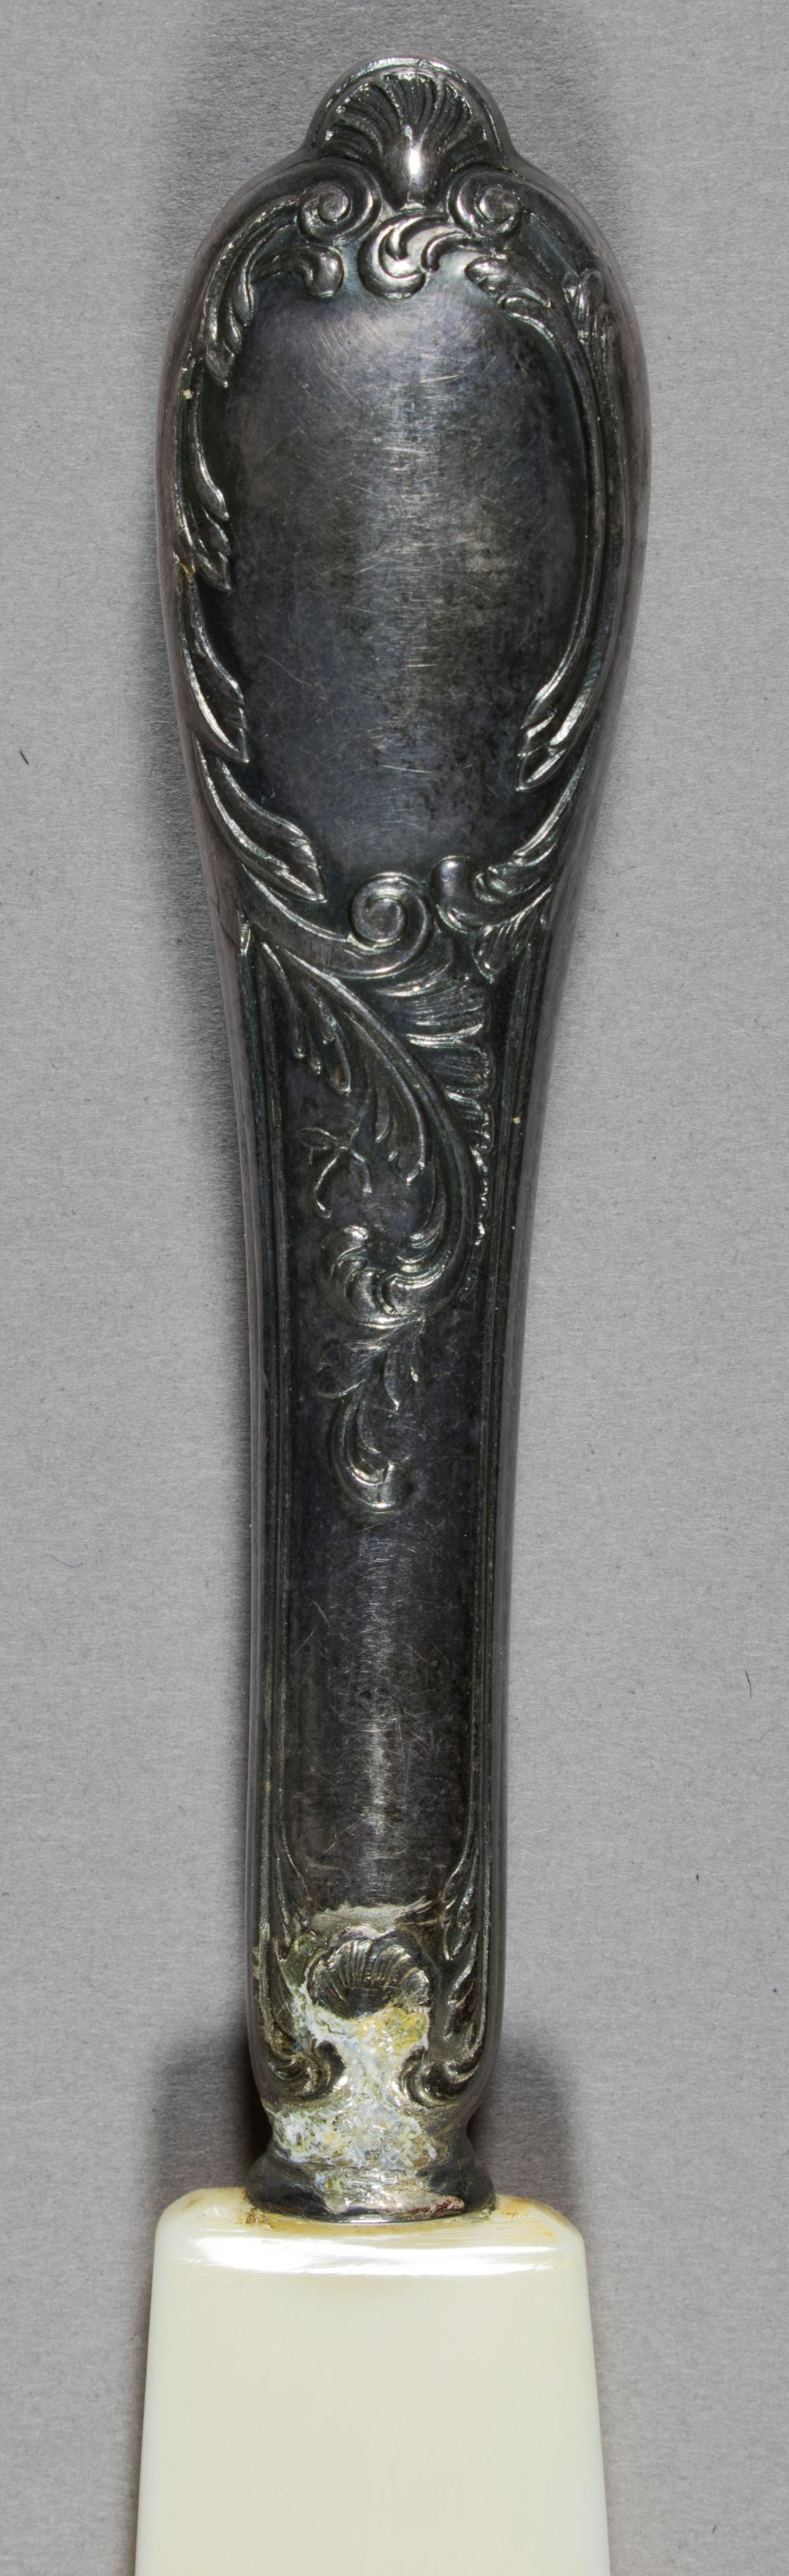 HERMANN GORING SILVER AND IVORY-COLOR FRUIT KNIFE